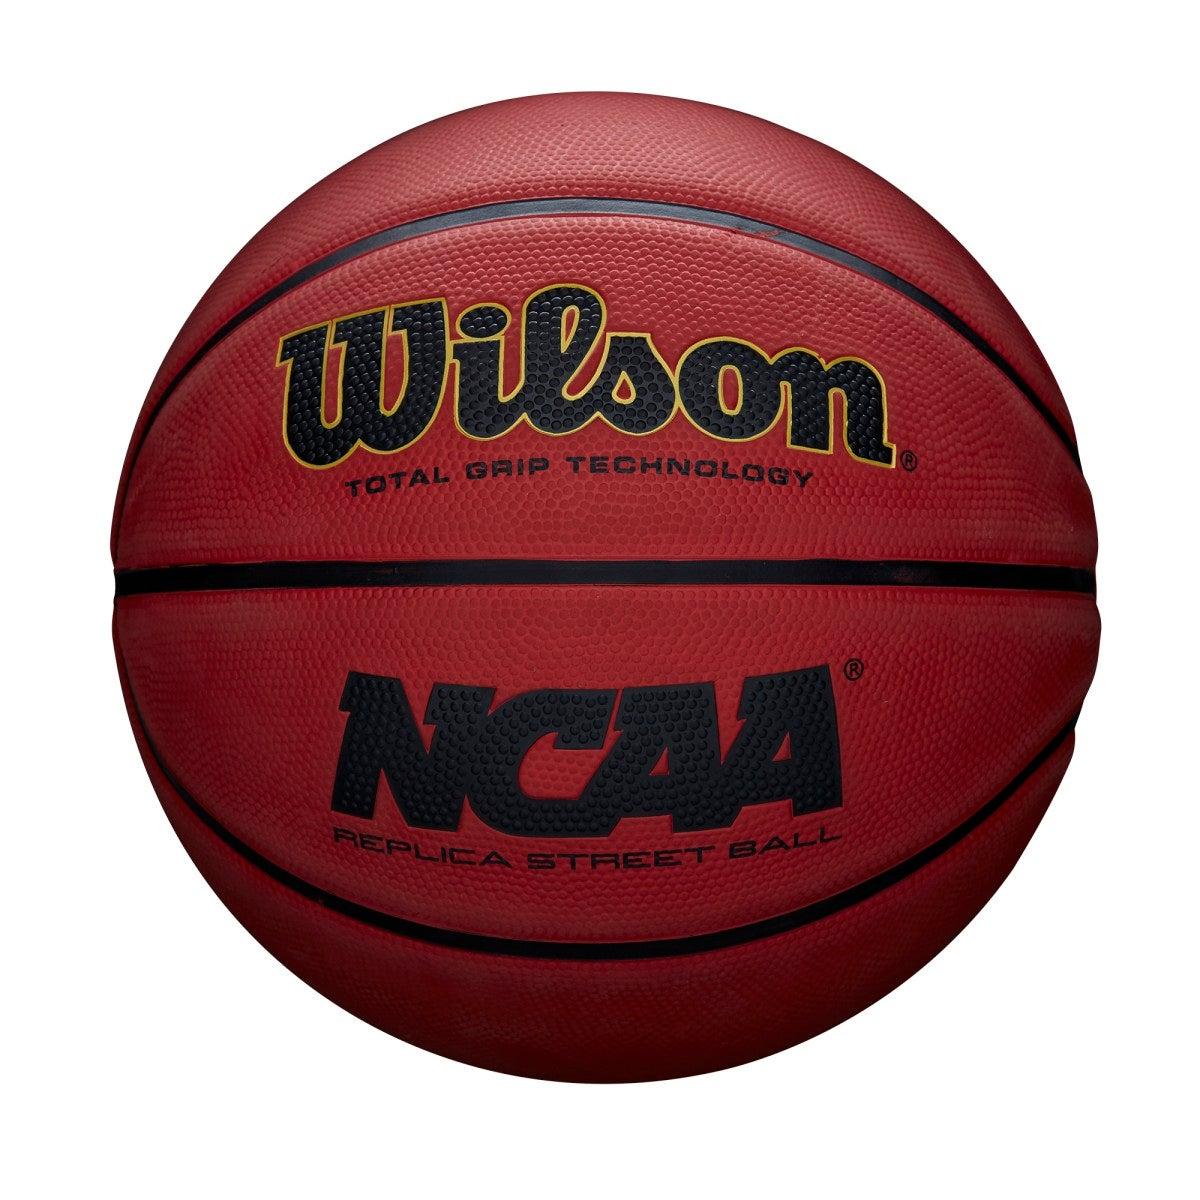 NCAA STREET REPLICA BASKETBALL - OFFICIAL SIZE (29.5 IN)